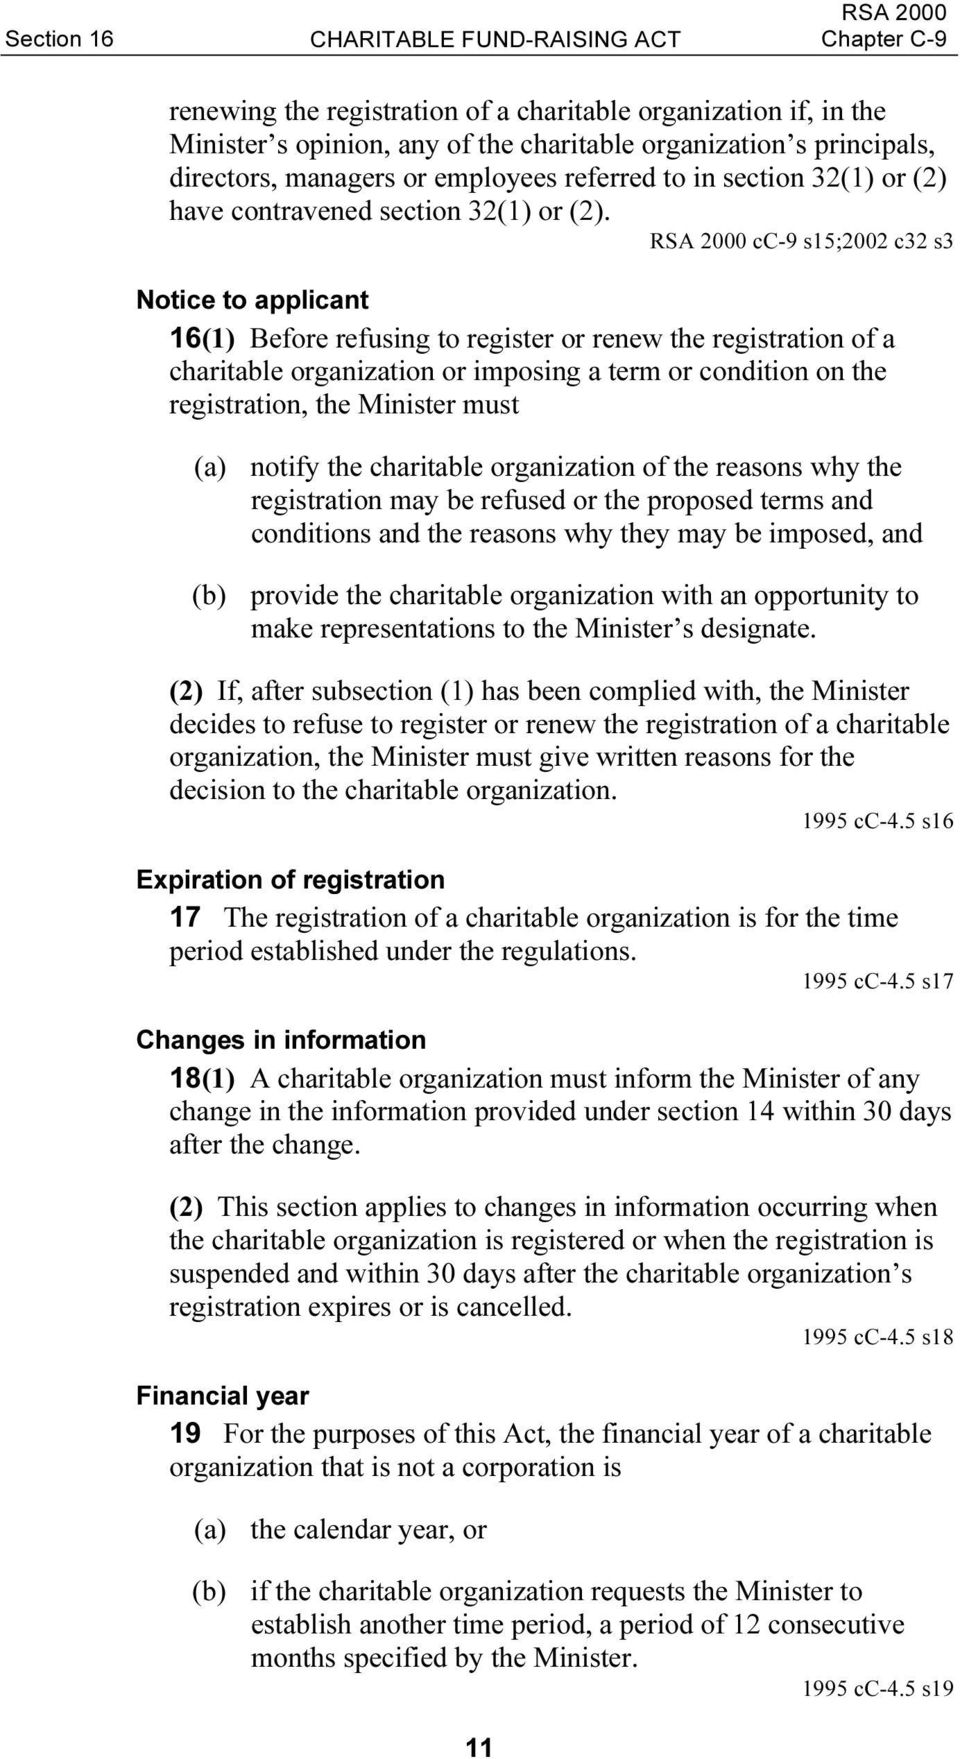 RSA 2000 cc-9 s15;2002 c32 s3 Notice to applicant 16(1) Before refusing to register or renew the registration of a charitable organization or imposing a term or condition on the registration, the